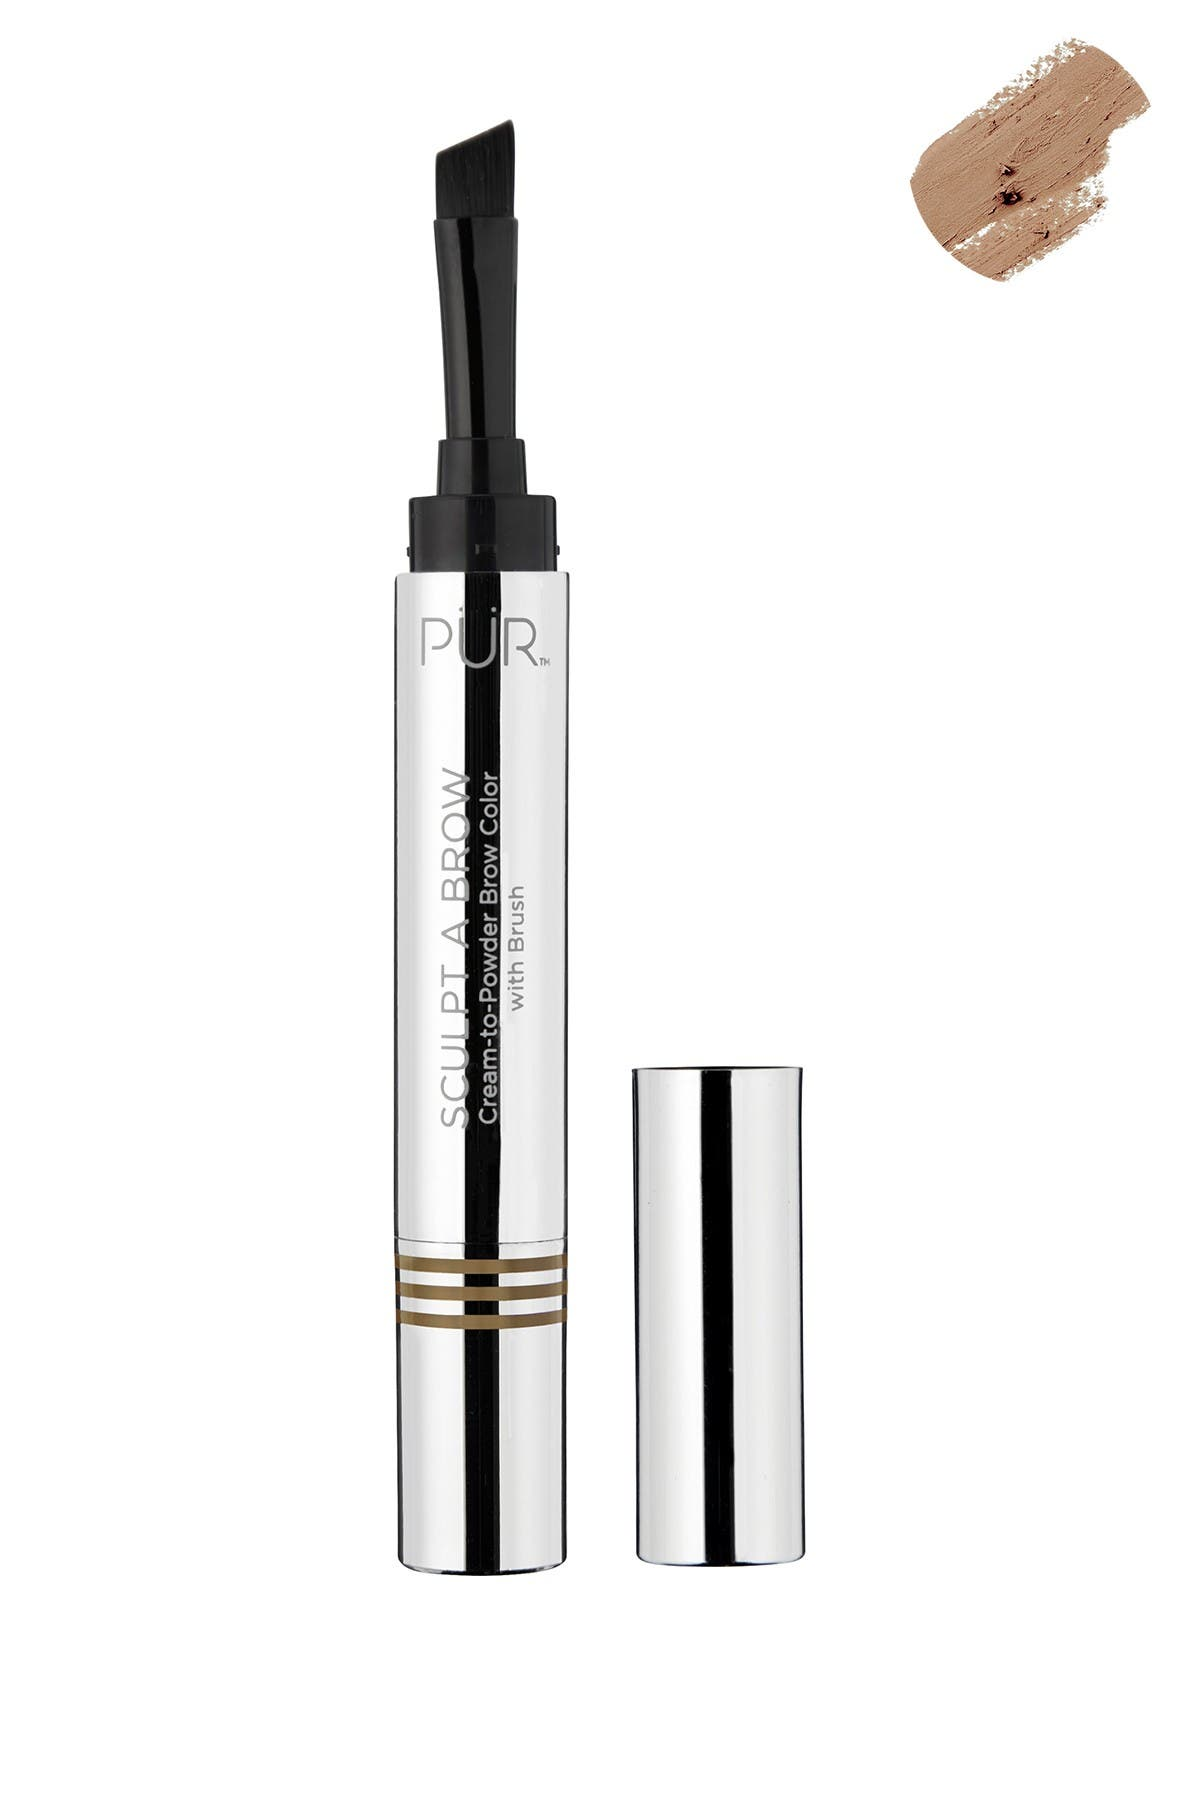 Image of PUR Cosmetics Sculpt A Brow - Light